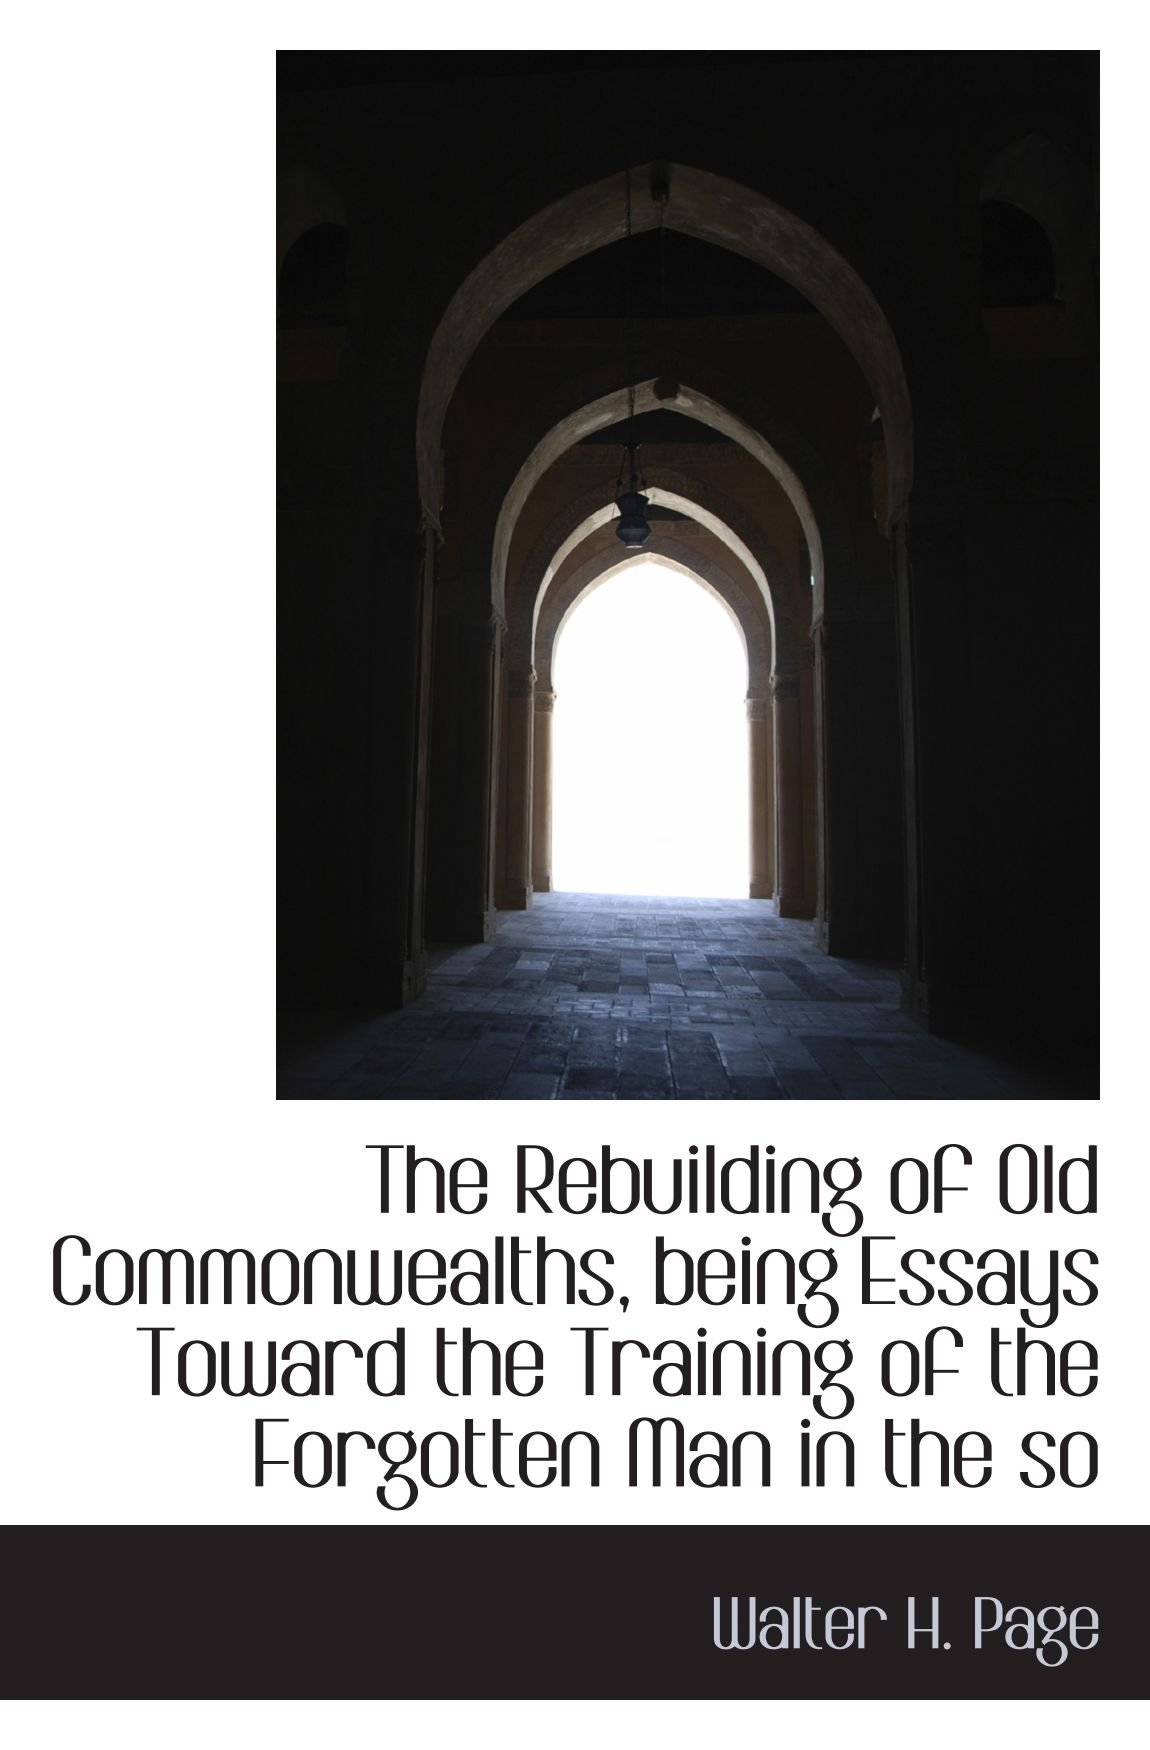 The Rebuilding of Old Commonwealths, being Essays Toward the Training of the Forgotten Man in the so PDF